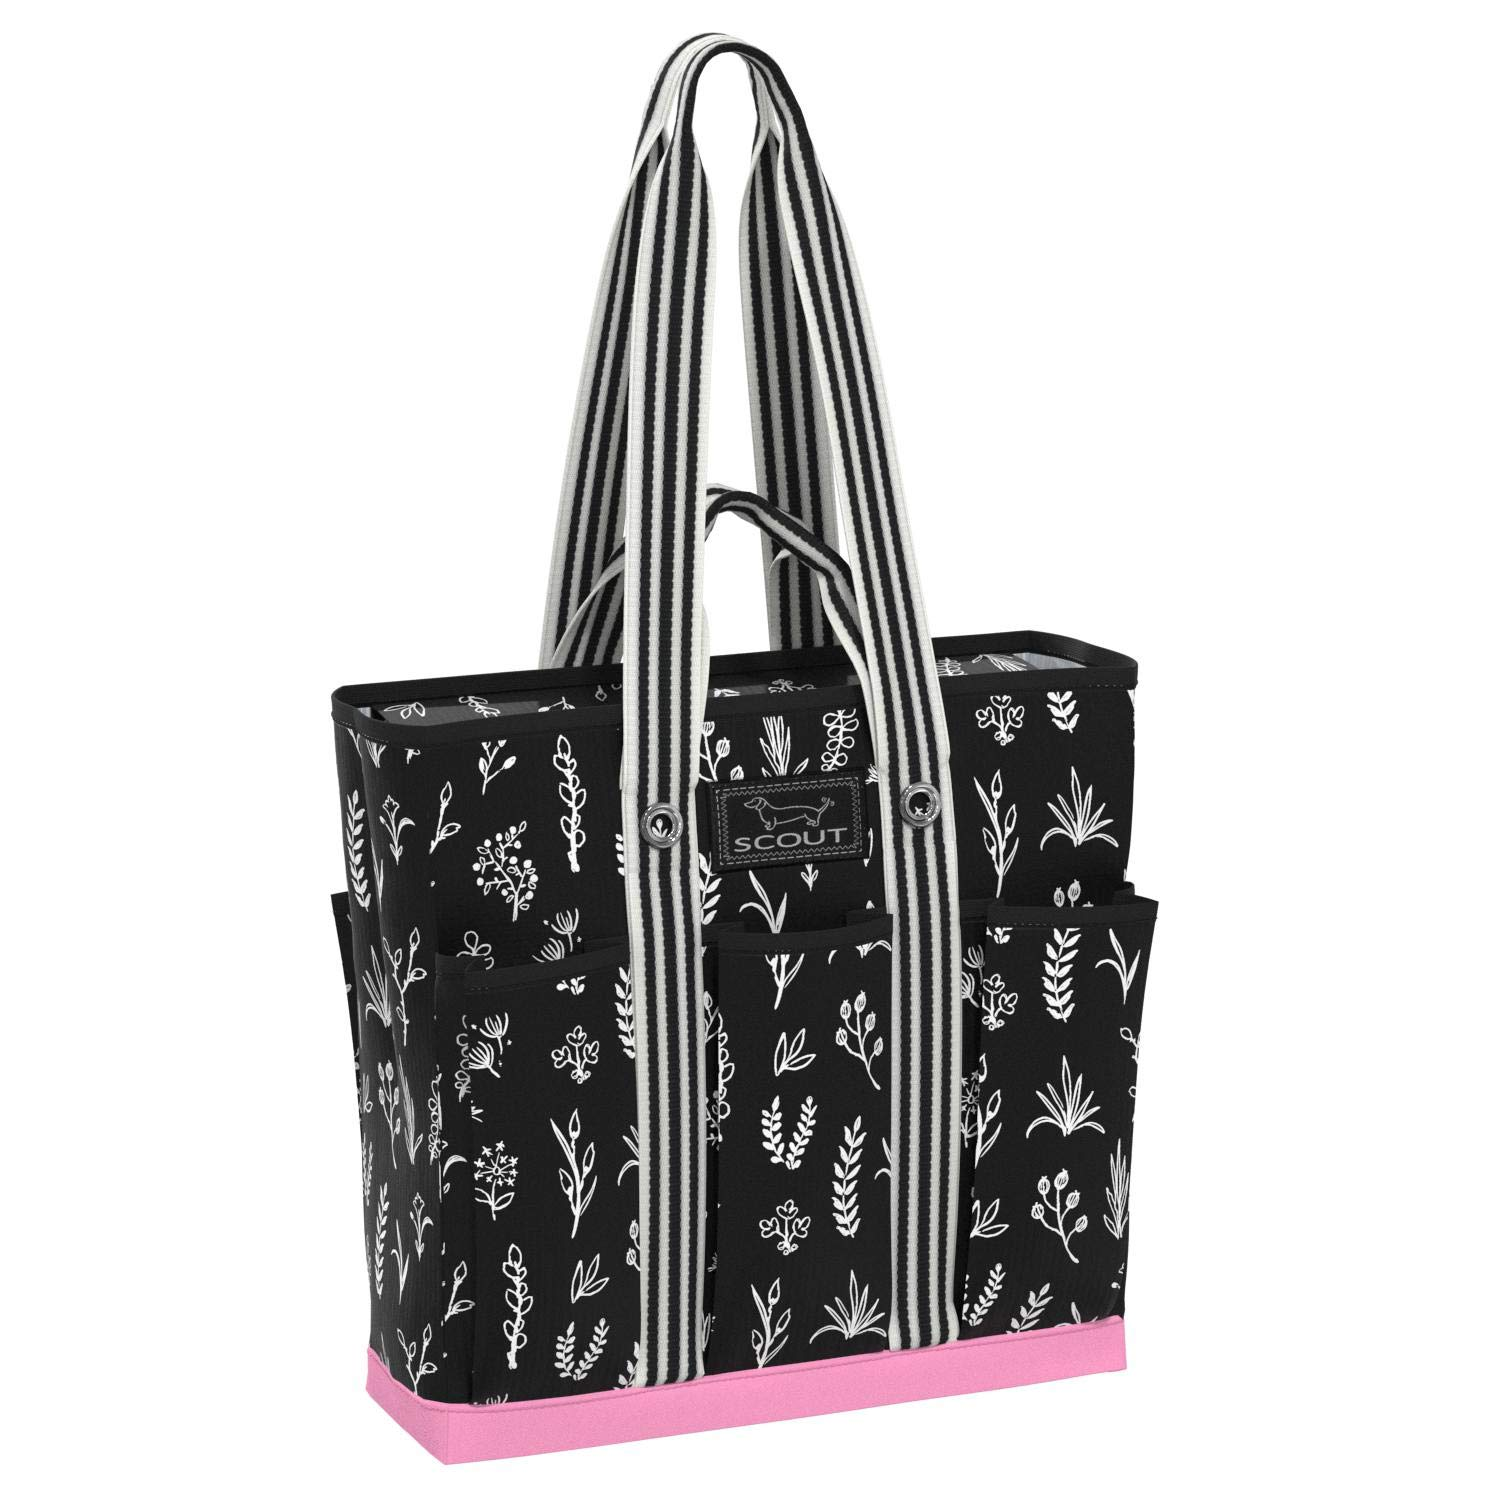 Multiple Patterns Available SCOUT POCKET ROCKET Large Tote Bag for Women Utility Tote Bag with Pockets and Zippered Compartments for Teachers and Nurses